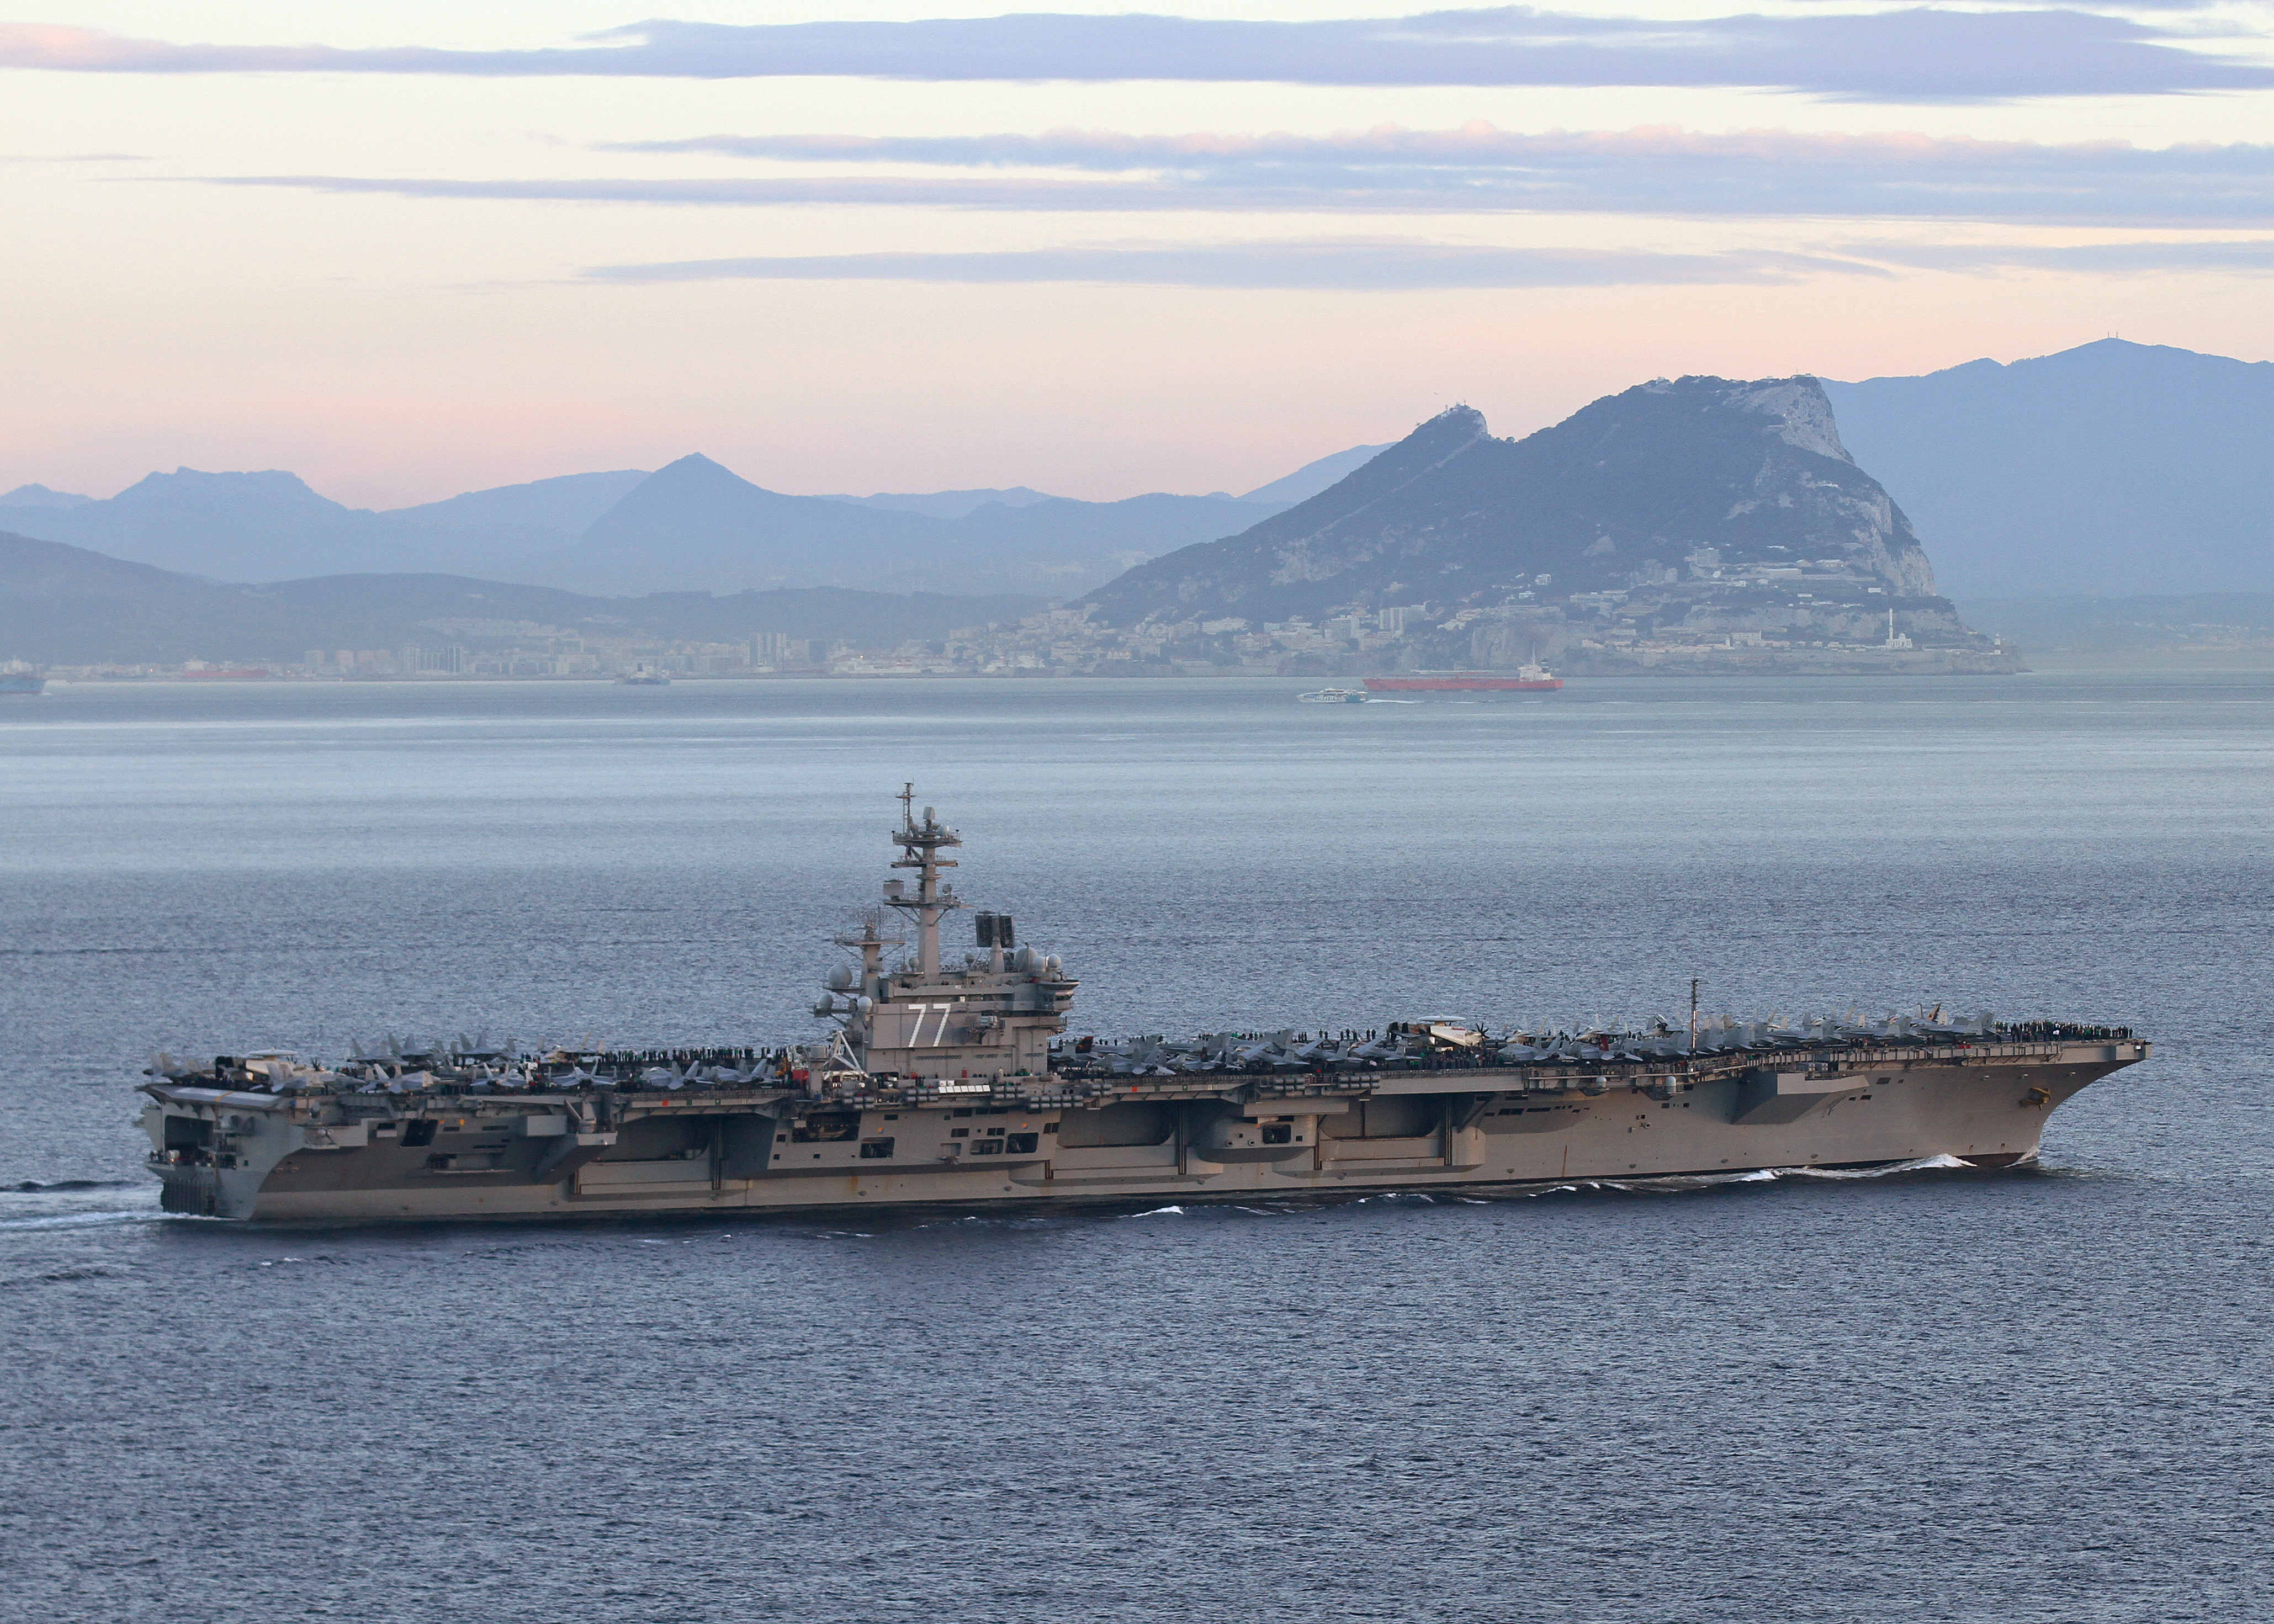 USS GEORGE H.W. BUSH CVN-77 am 27.02.2014 vor Gibraltar